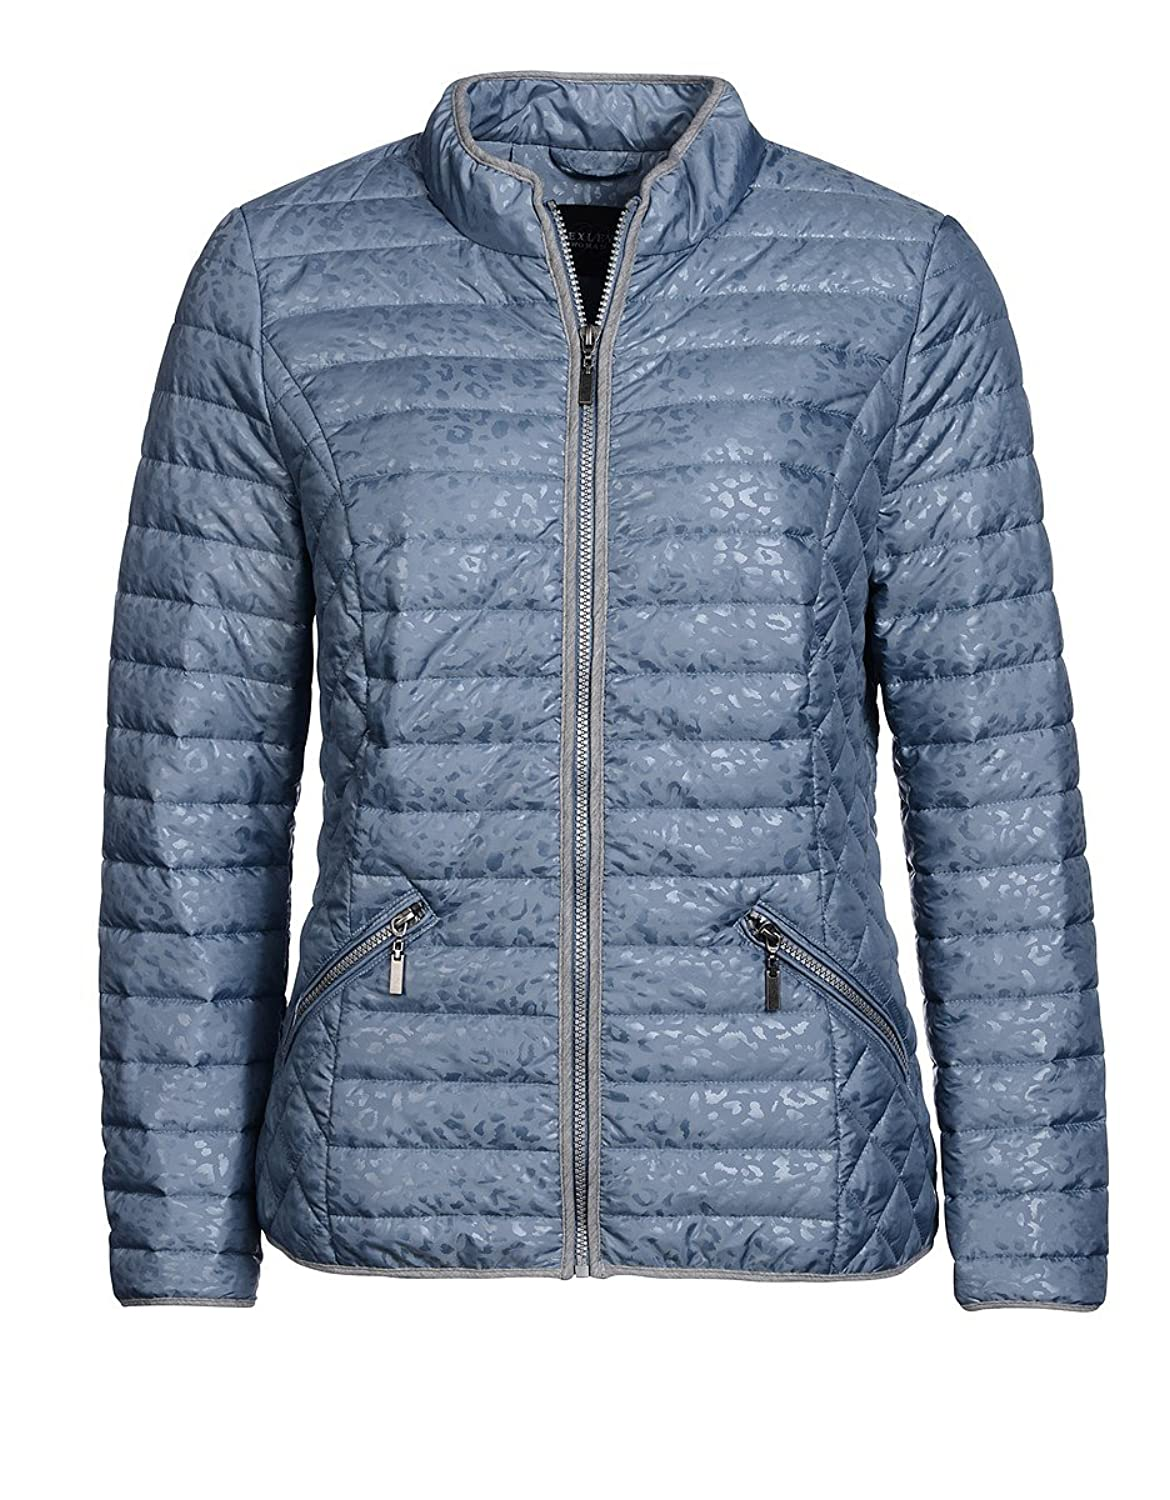 70%OFF Bexleys woman by Adler Mode Damen Steppjacke mit